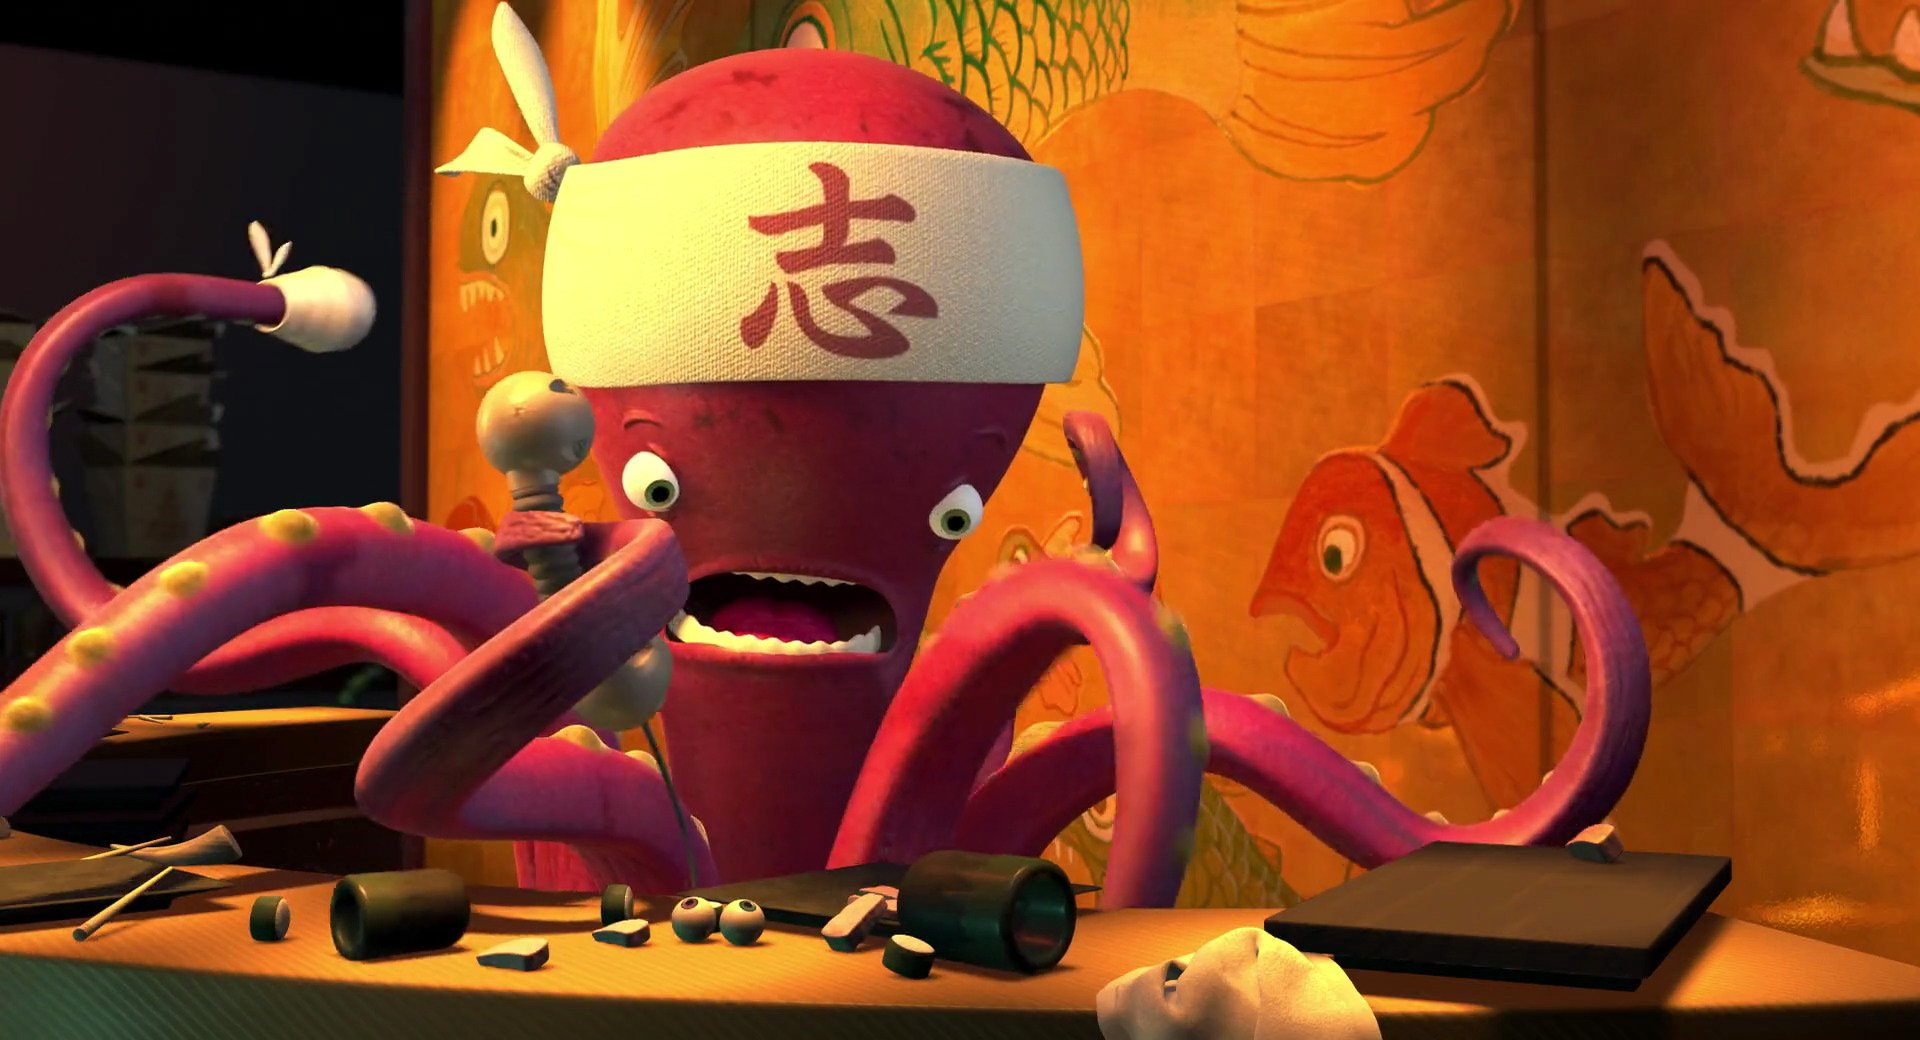 chef sushi personnage monstres cie 02 21 Of The Cheekiest Easter Eggs You Missed In Pixar Movies